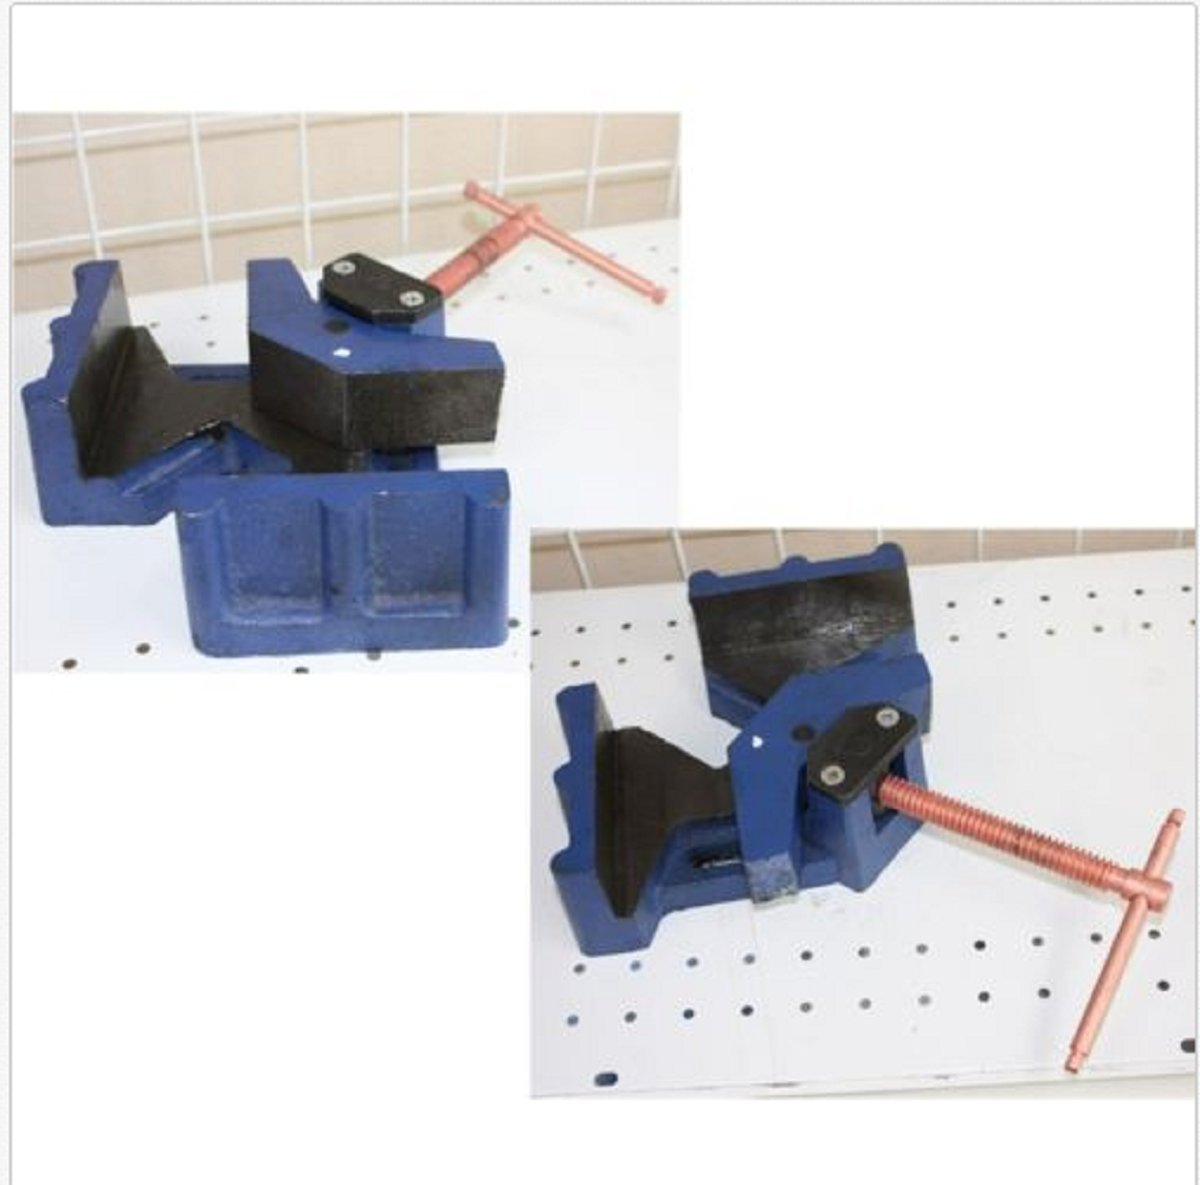 USA Premium Store LOT OF TWO 2-1/2'' JAW WELDER WELDING MOLDING 90° ANGLE CORNER CLAMP BENCH VISE